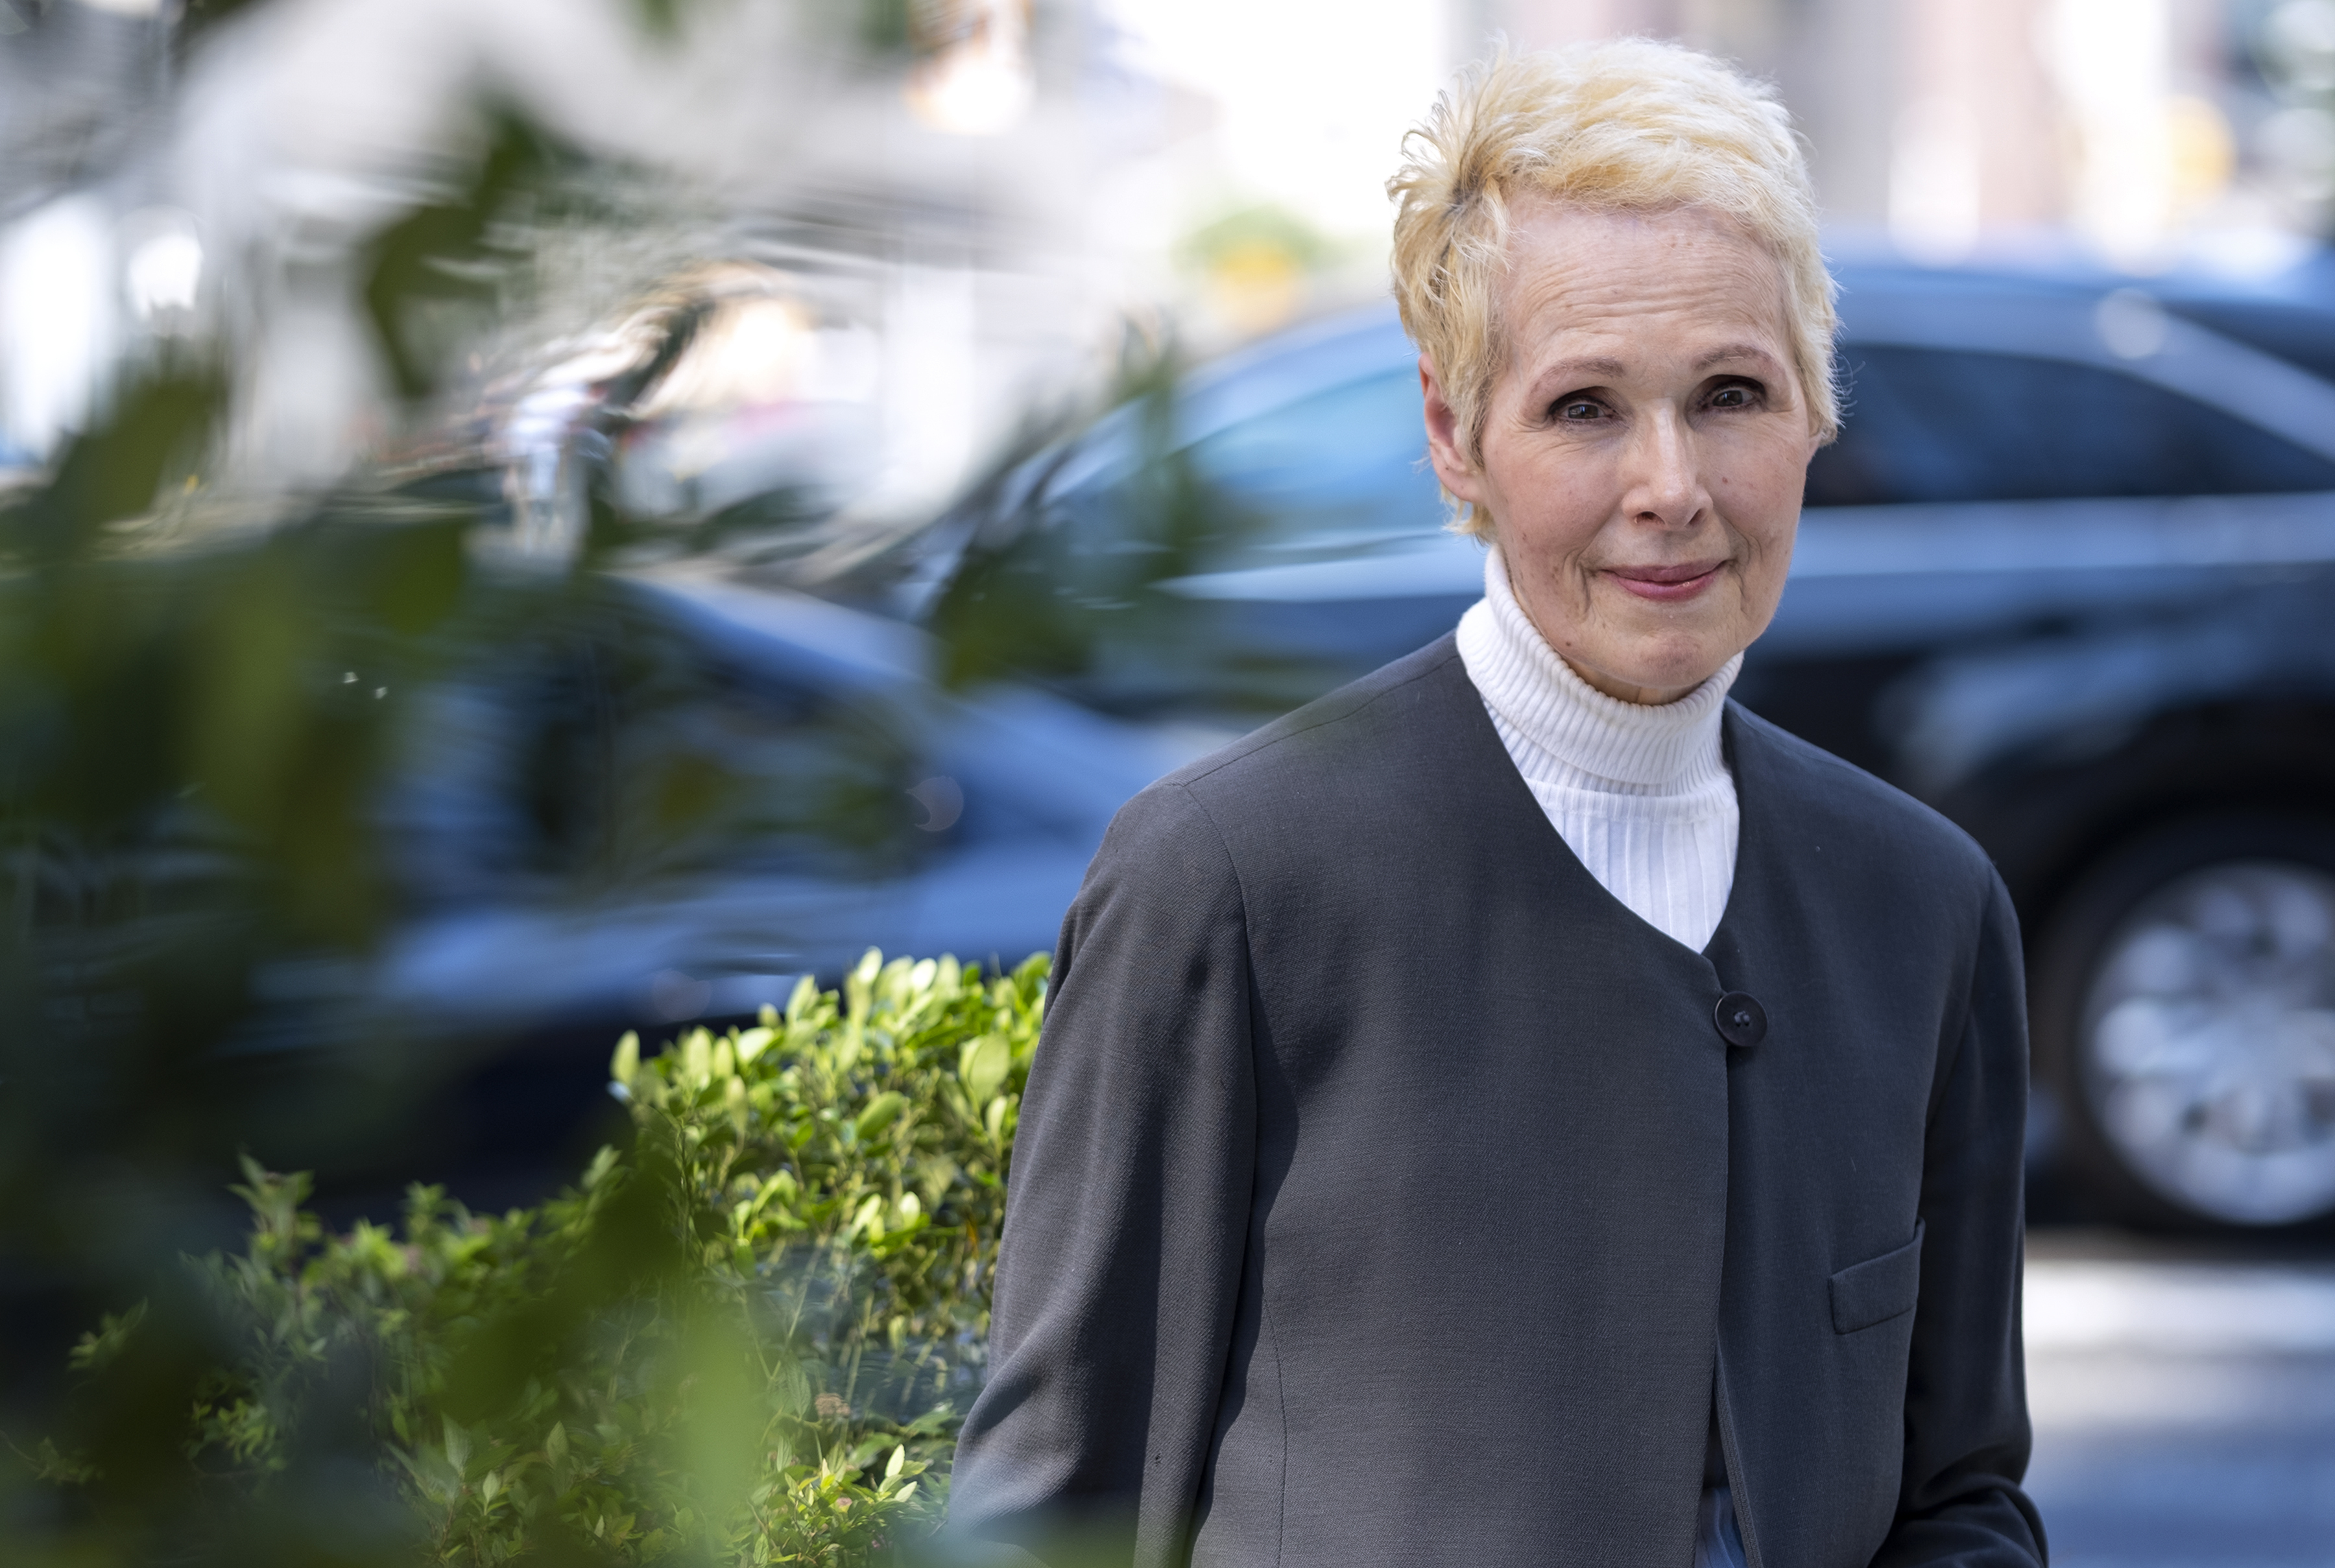 E. Jean Carroll isn't the perfect victim, and she doesn't need to be